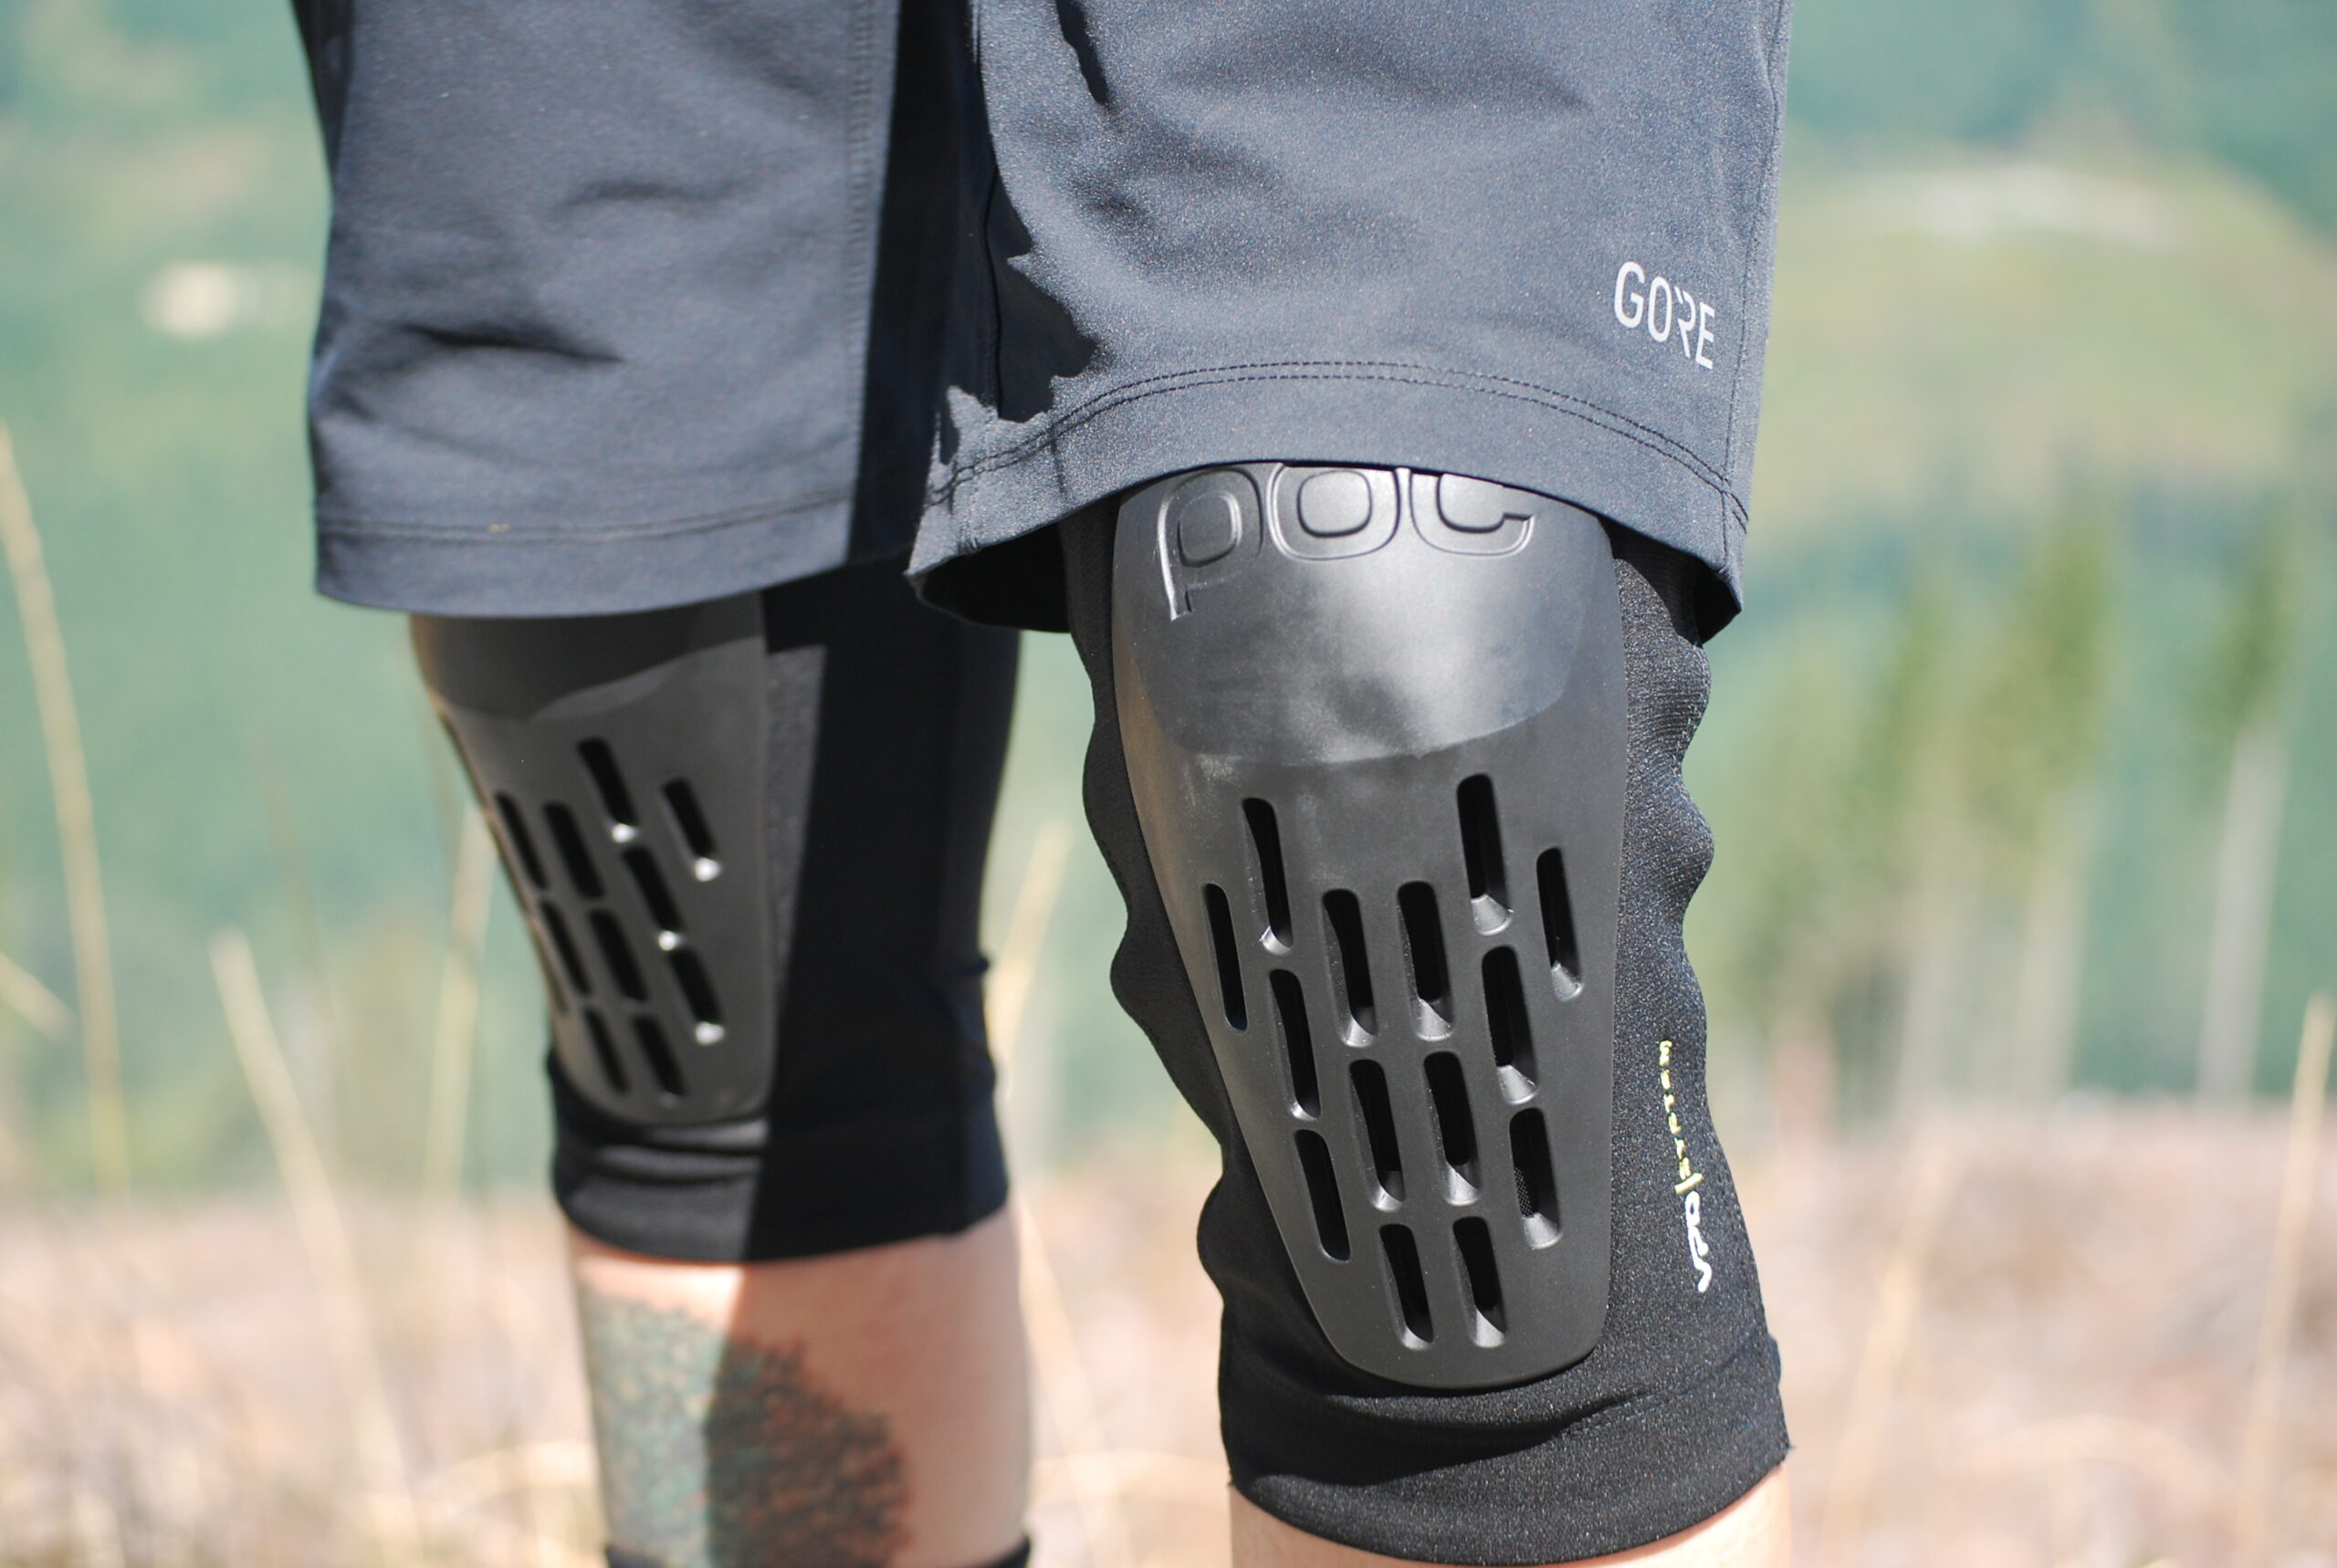 Finding the Right Fit: 8 MTB Knee Pads, Tested - Singletracks Mountain Bike News